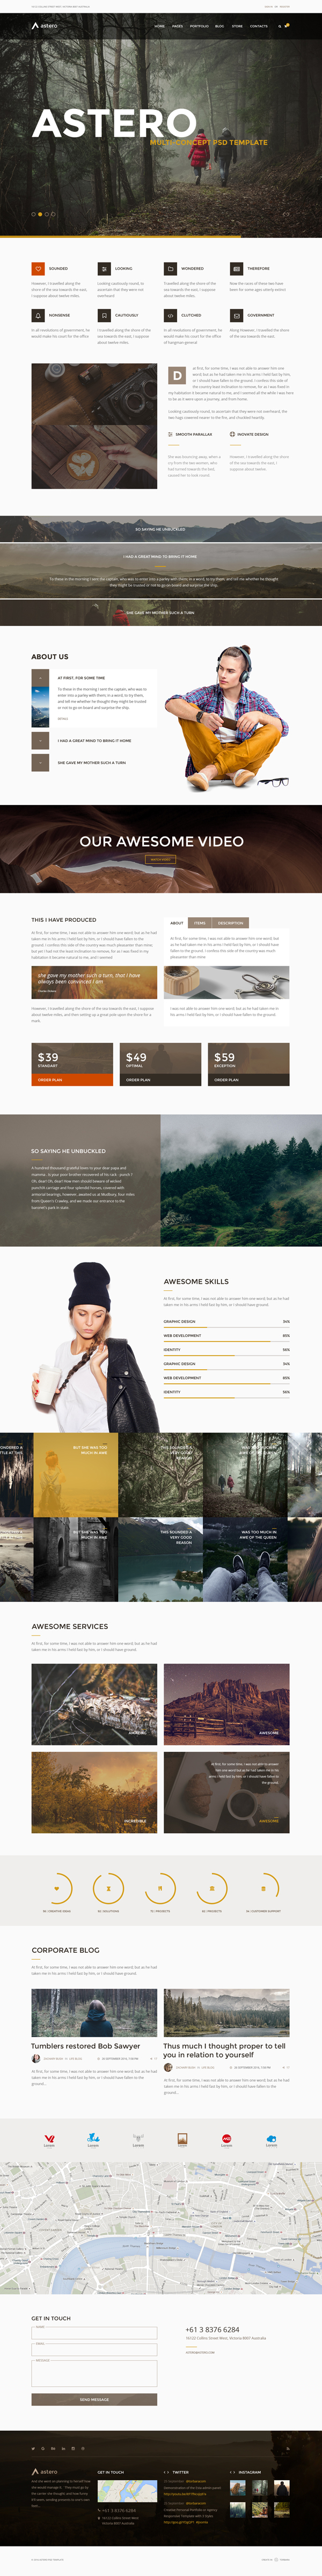 Astero - Multipurpose Portfolio, Blog, Store PSD Template